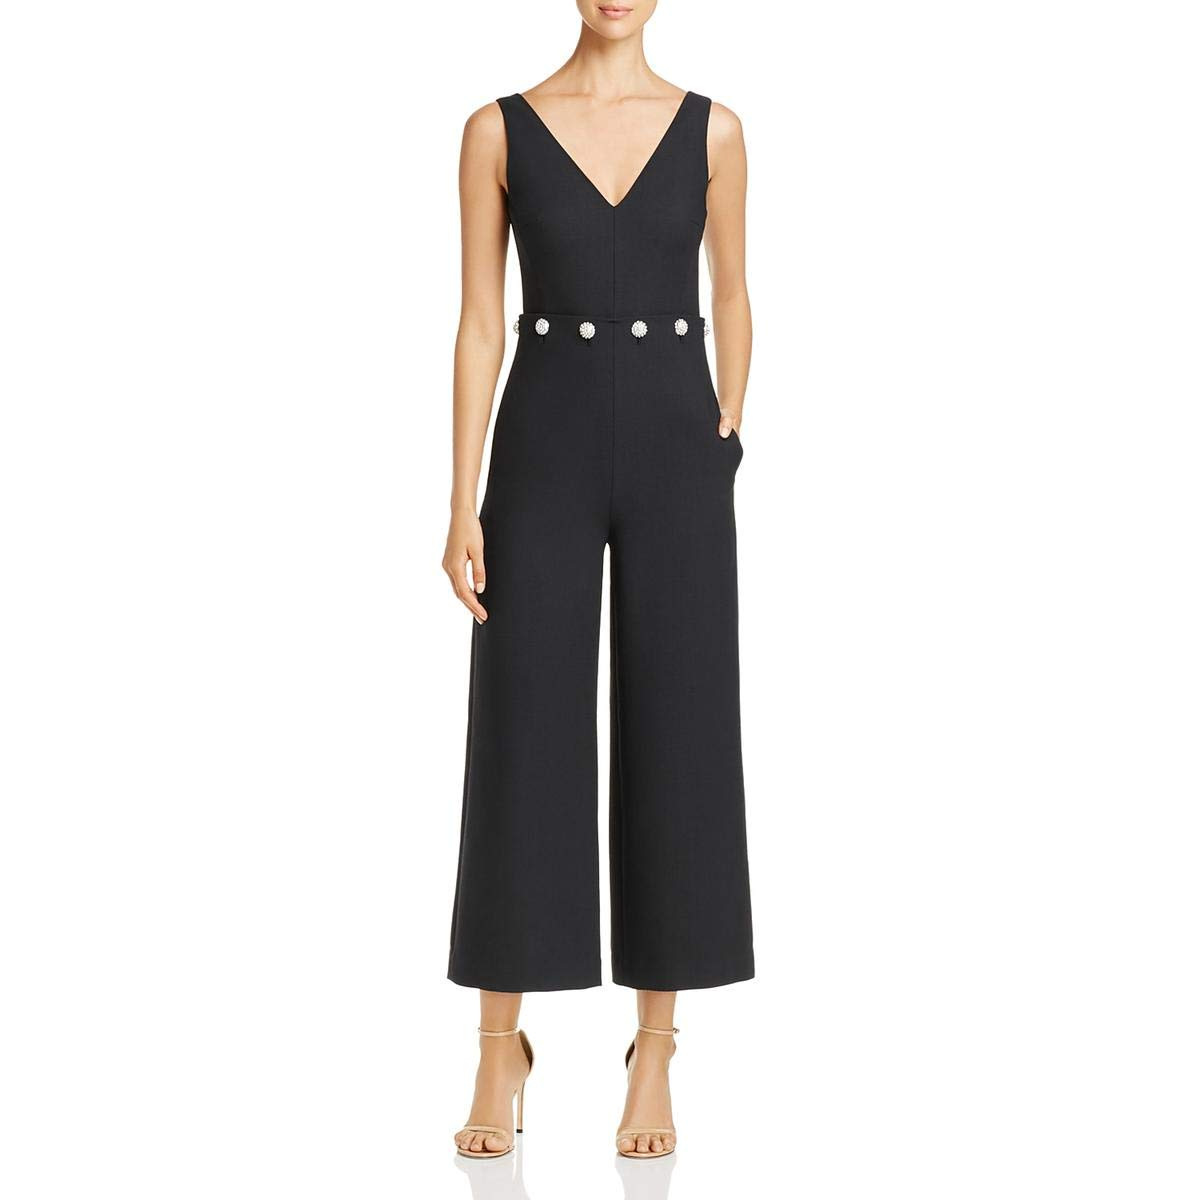 a9790f5bfdf2 Amazon.com  Tory Burch Womens Fremont Special Occasion Embellished Jumpsuit  Black 10  Clothing